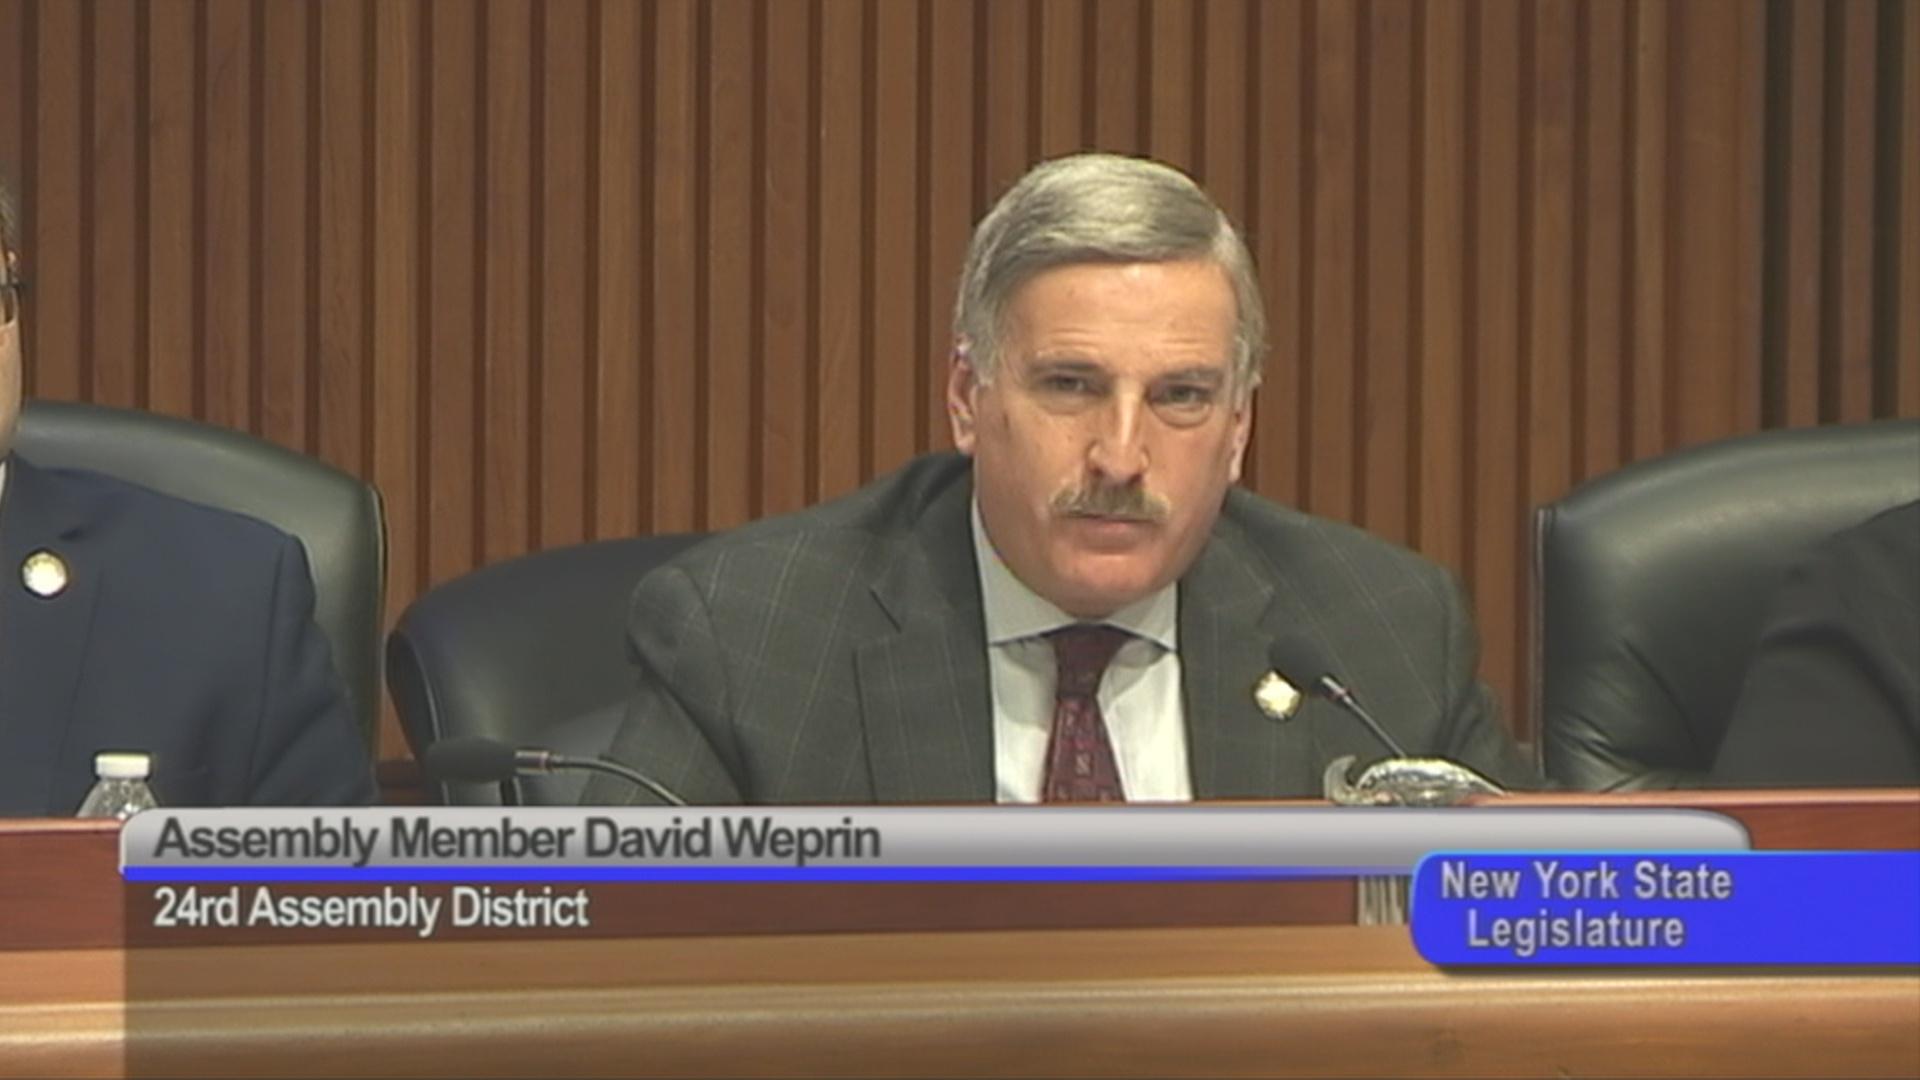 Weprin's concern with NYC Public Schools not following ADA standards